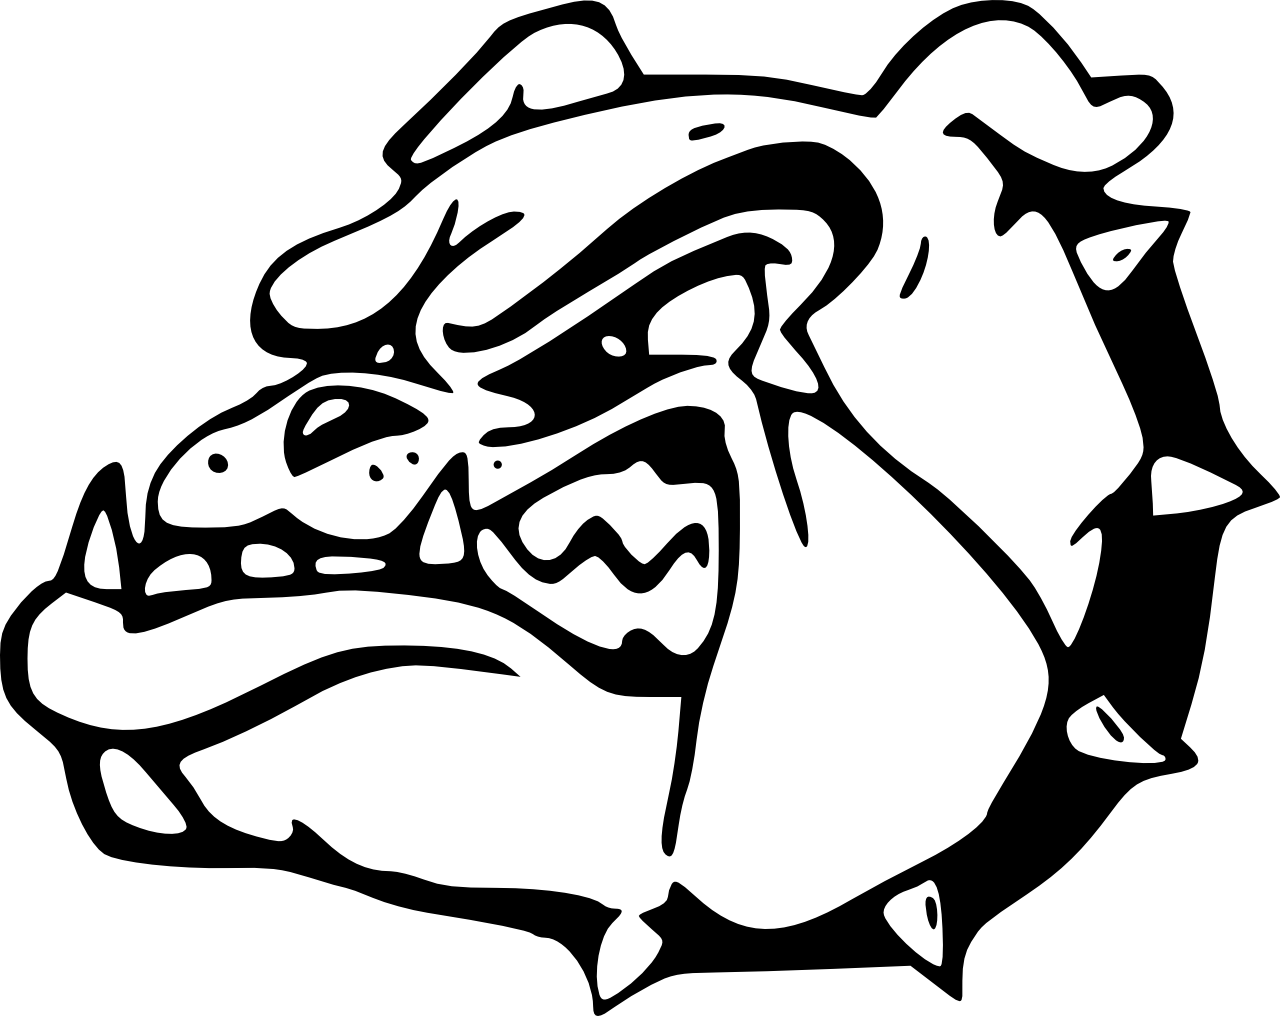 Bulldog Images on georgia bulldogs football logo